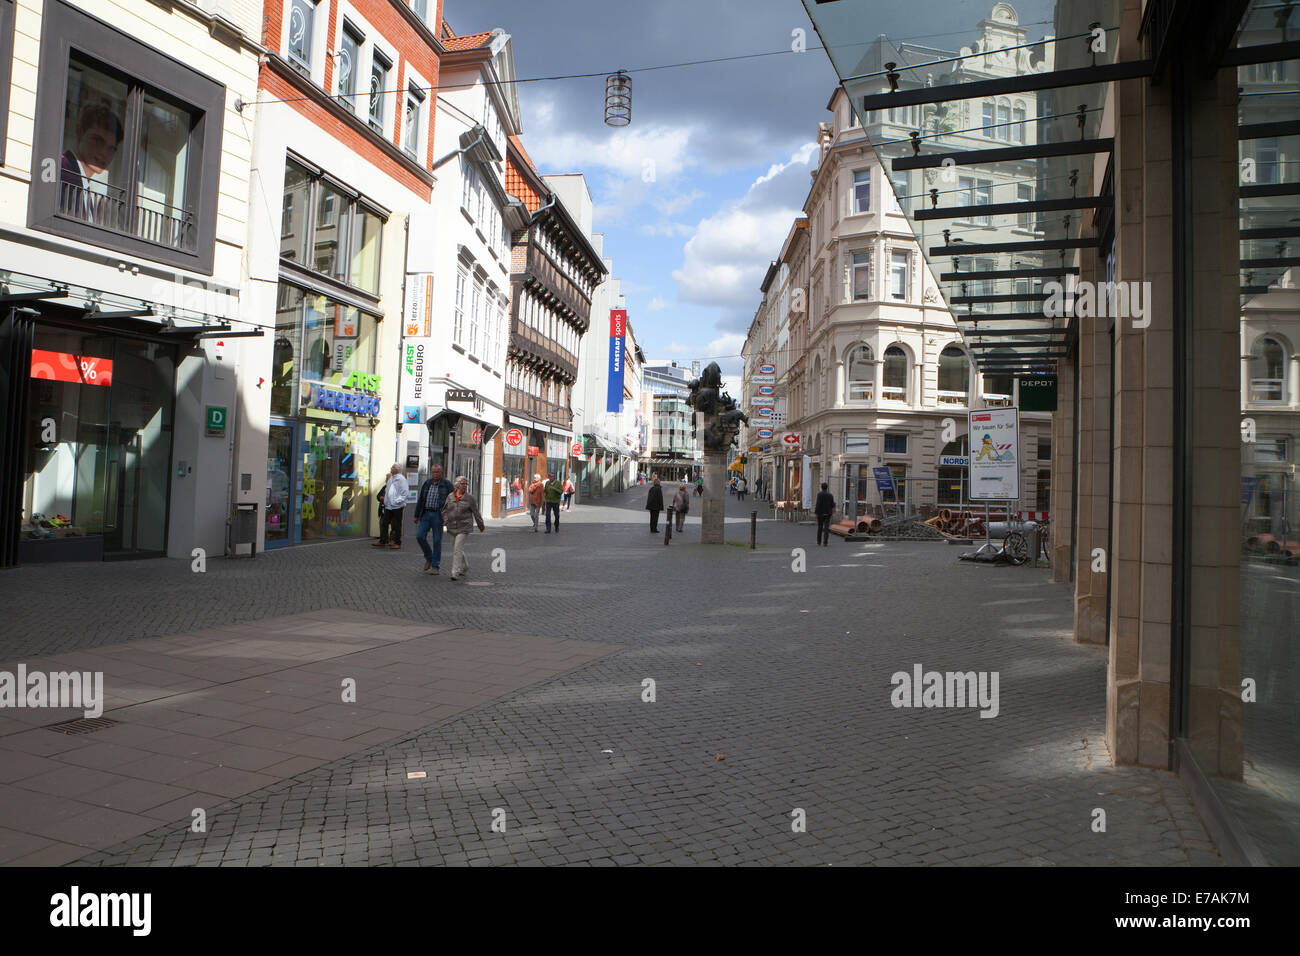 Pedestrian zone, Braunschweig, Brunswick, Lower Saxony, Germany, Europe, - Stock Image